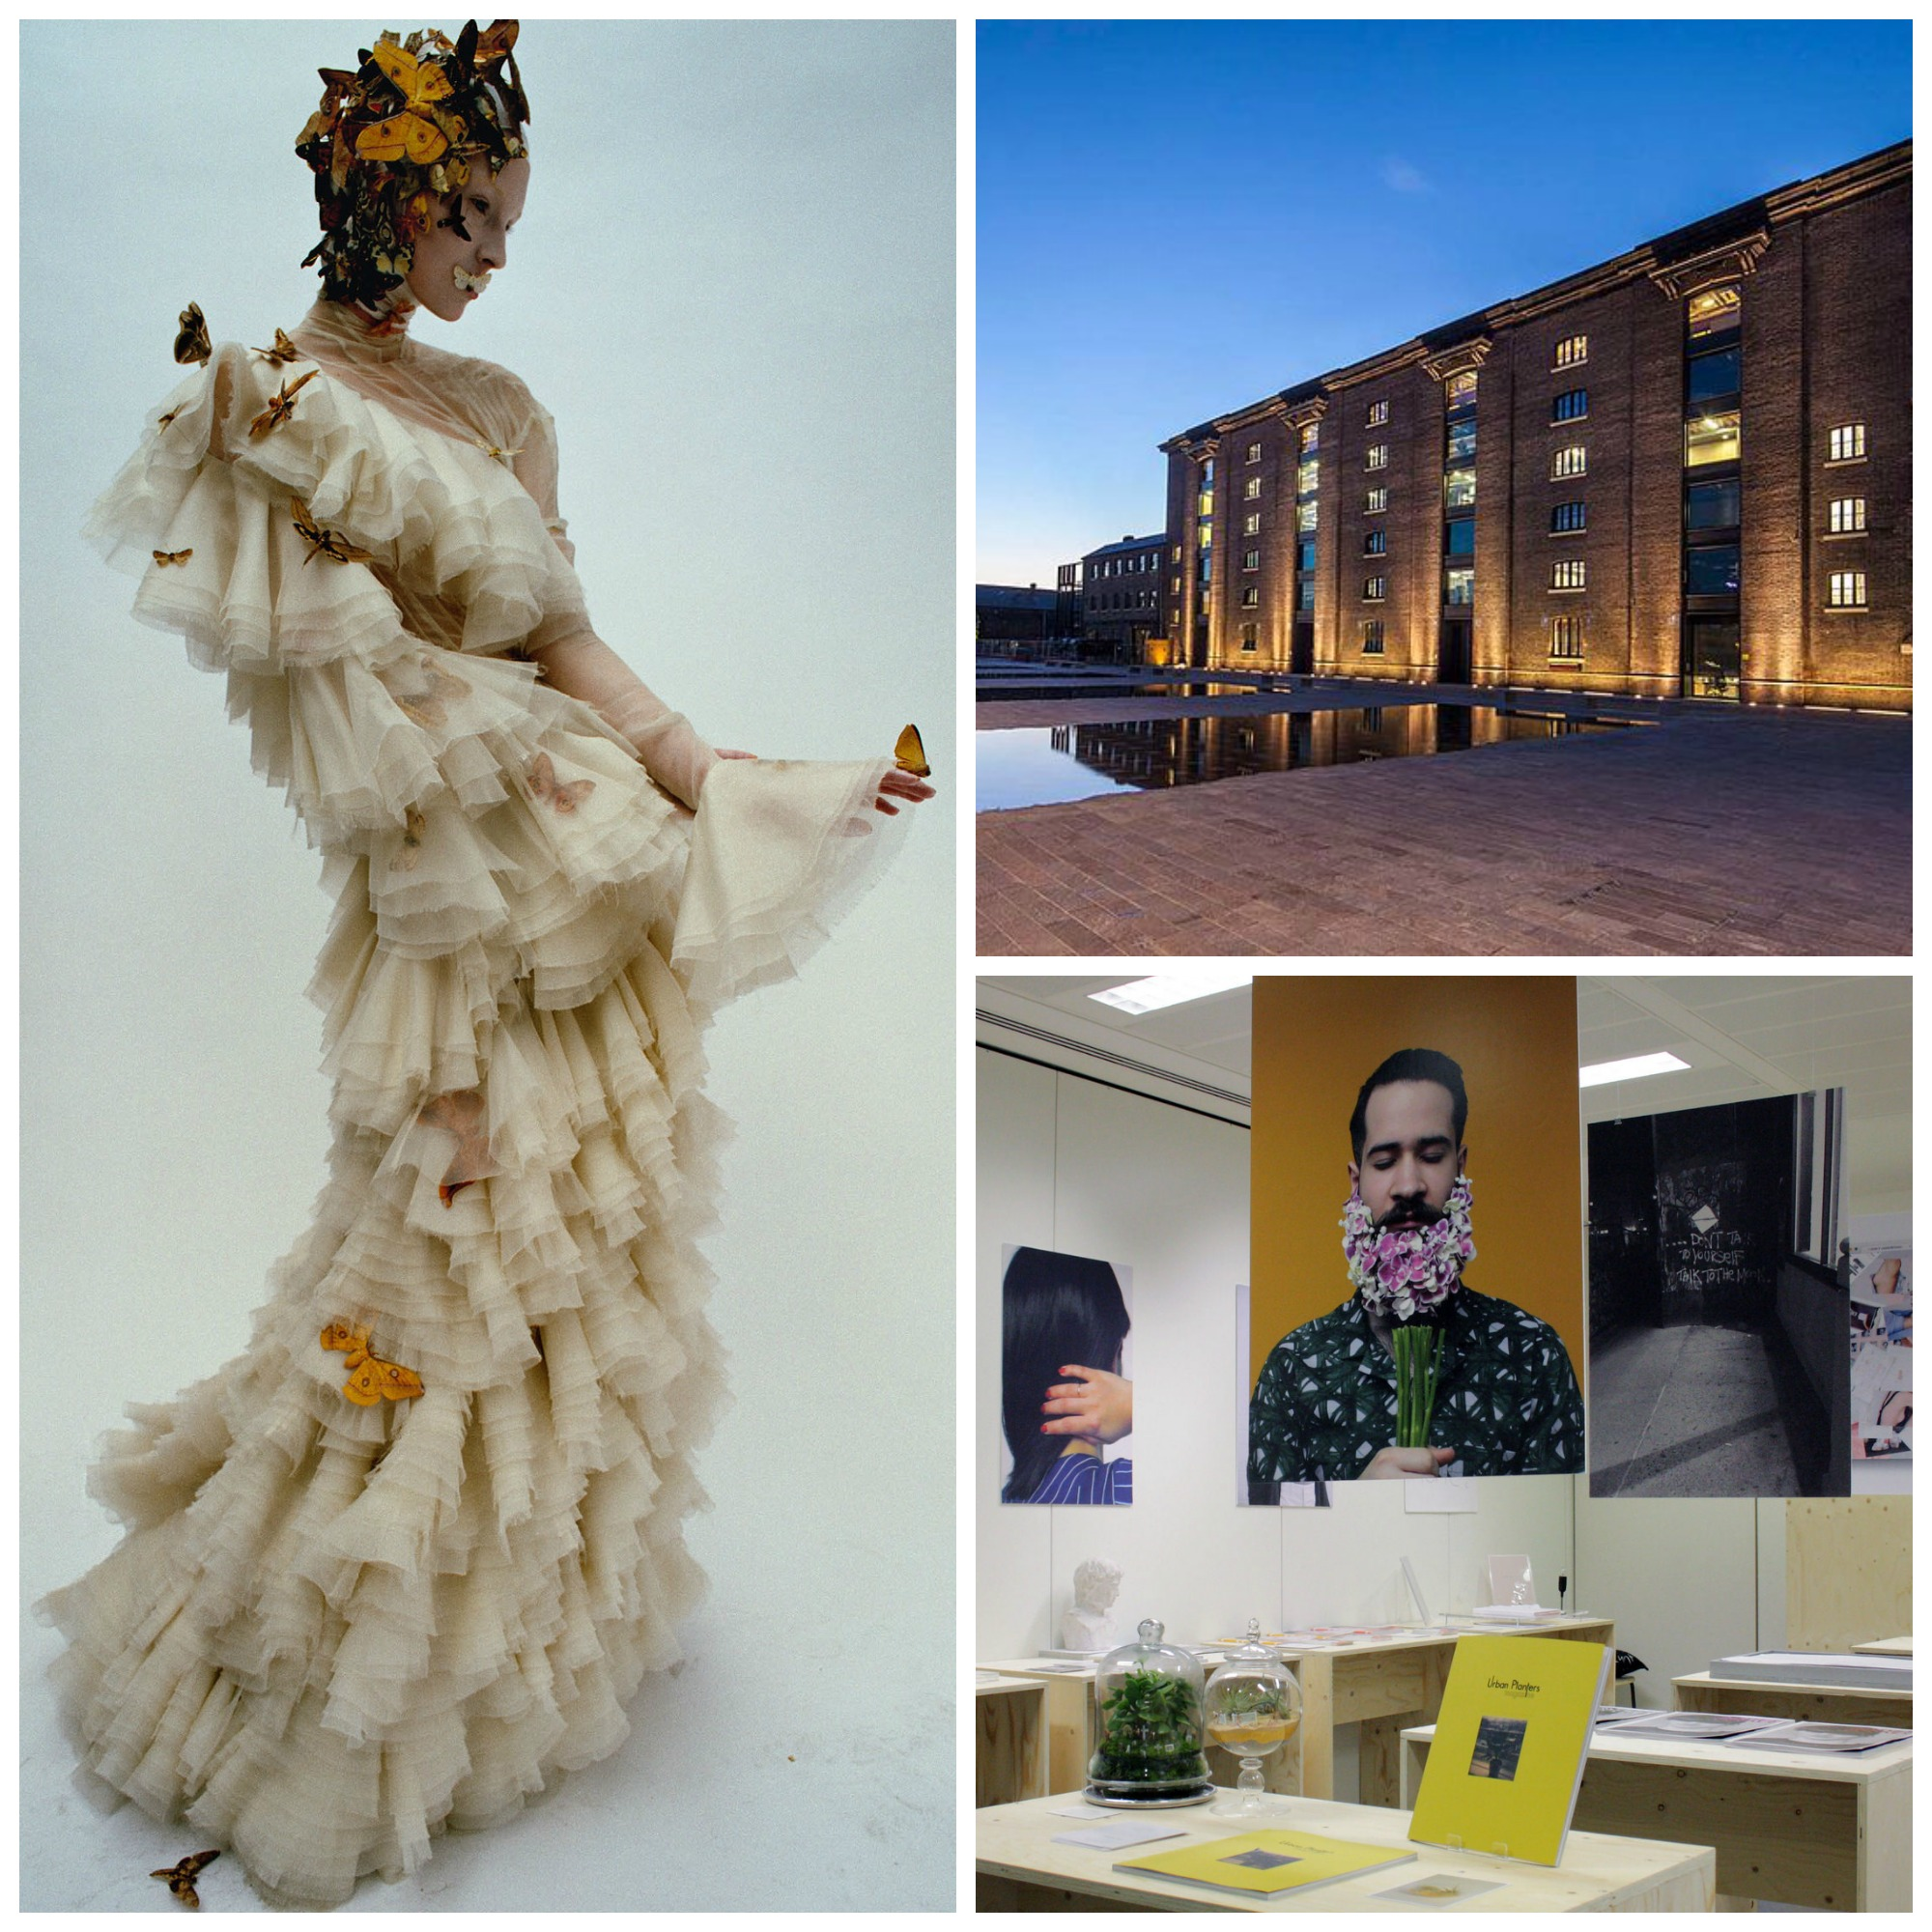 'Dark Angel' by Tim Walker for British Vogue, February, 2015, featuring Alexander McQueen - 'The Widows of Culloden' Autumn-Winter 2006 collection|©Ŧhe ₵oincidental Ðandy/Flickr / Central Saint Martins building, Granary Square|©University of the Arts, London/UAL / Show Two at Central St Martins, 2015|©SUARTS/Flickr